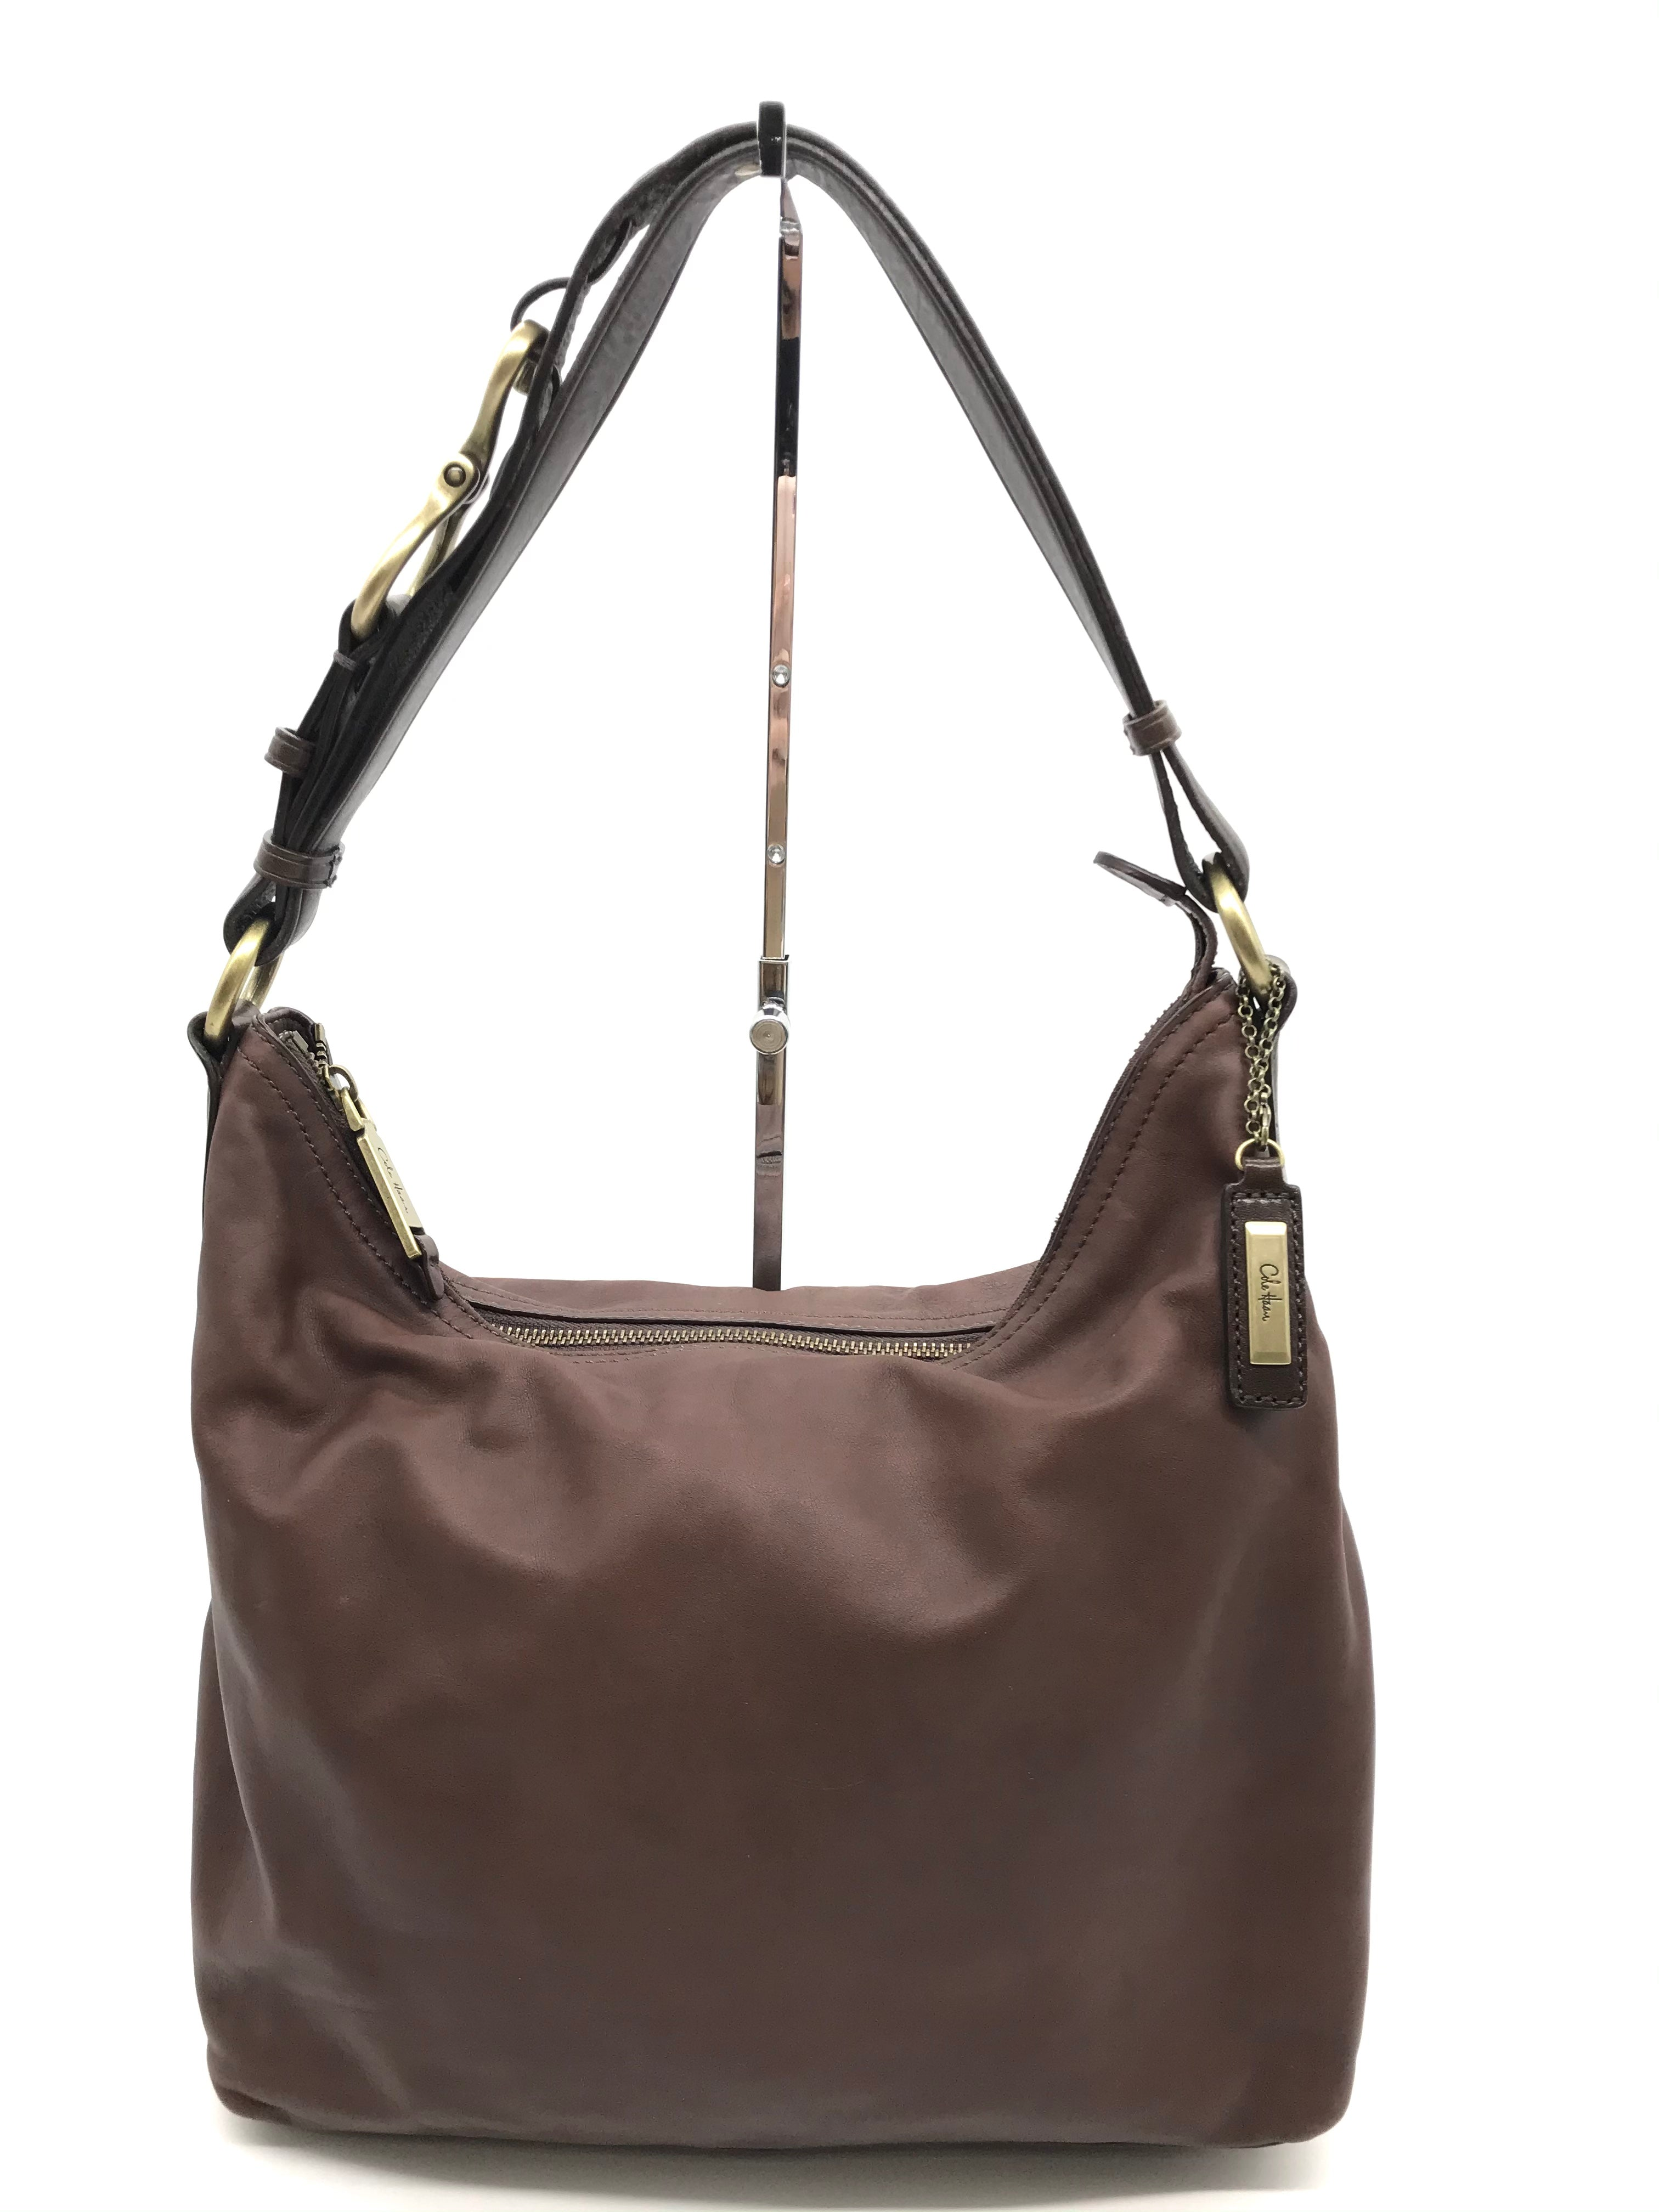 Primary Photo - BRAND: COLE-HAAN <BR>STYLE: HANDBAG <BR>COLOR: BROWN <BR>SIZE: SMALL<BR>SKU: 262-26241-43732<BR>AS IS